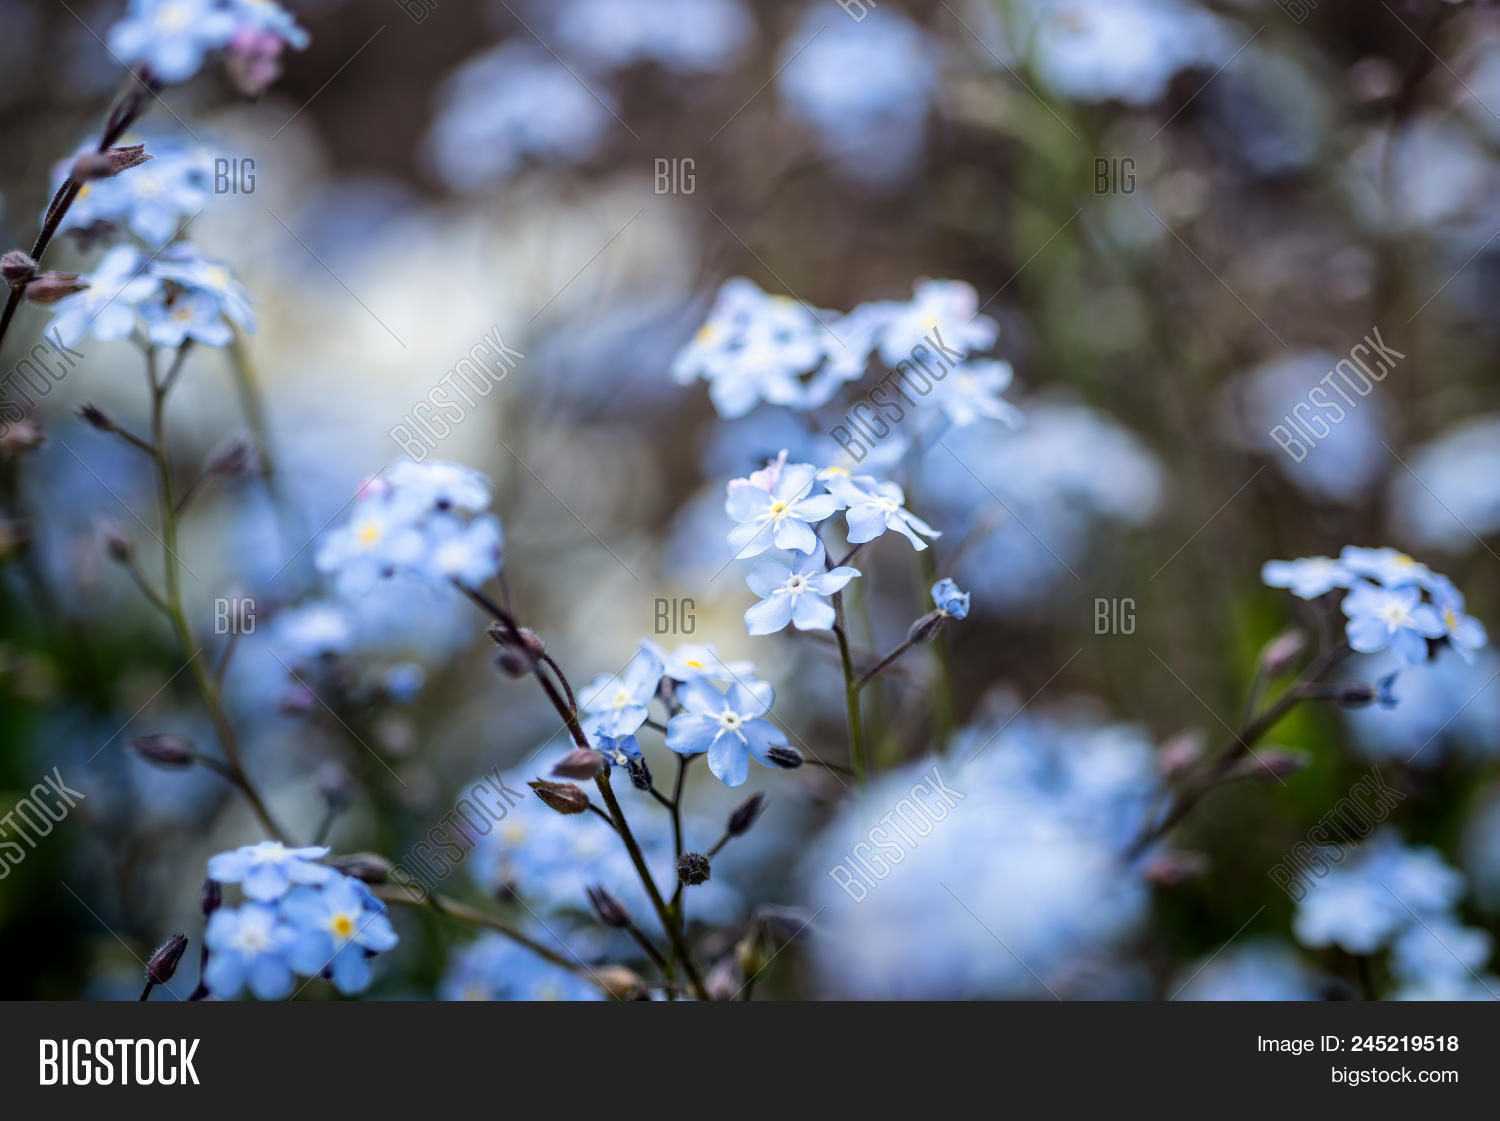 Small blue flowers image photo free trial bigstock small blue flowers forget me not the field izmirmasajfo